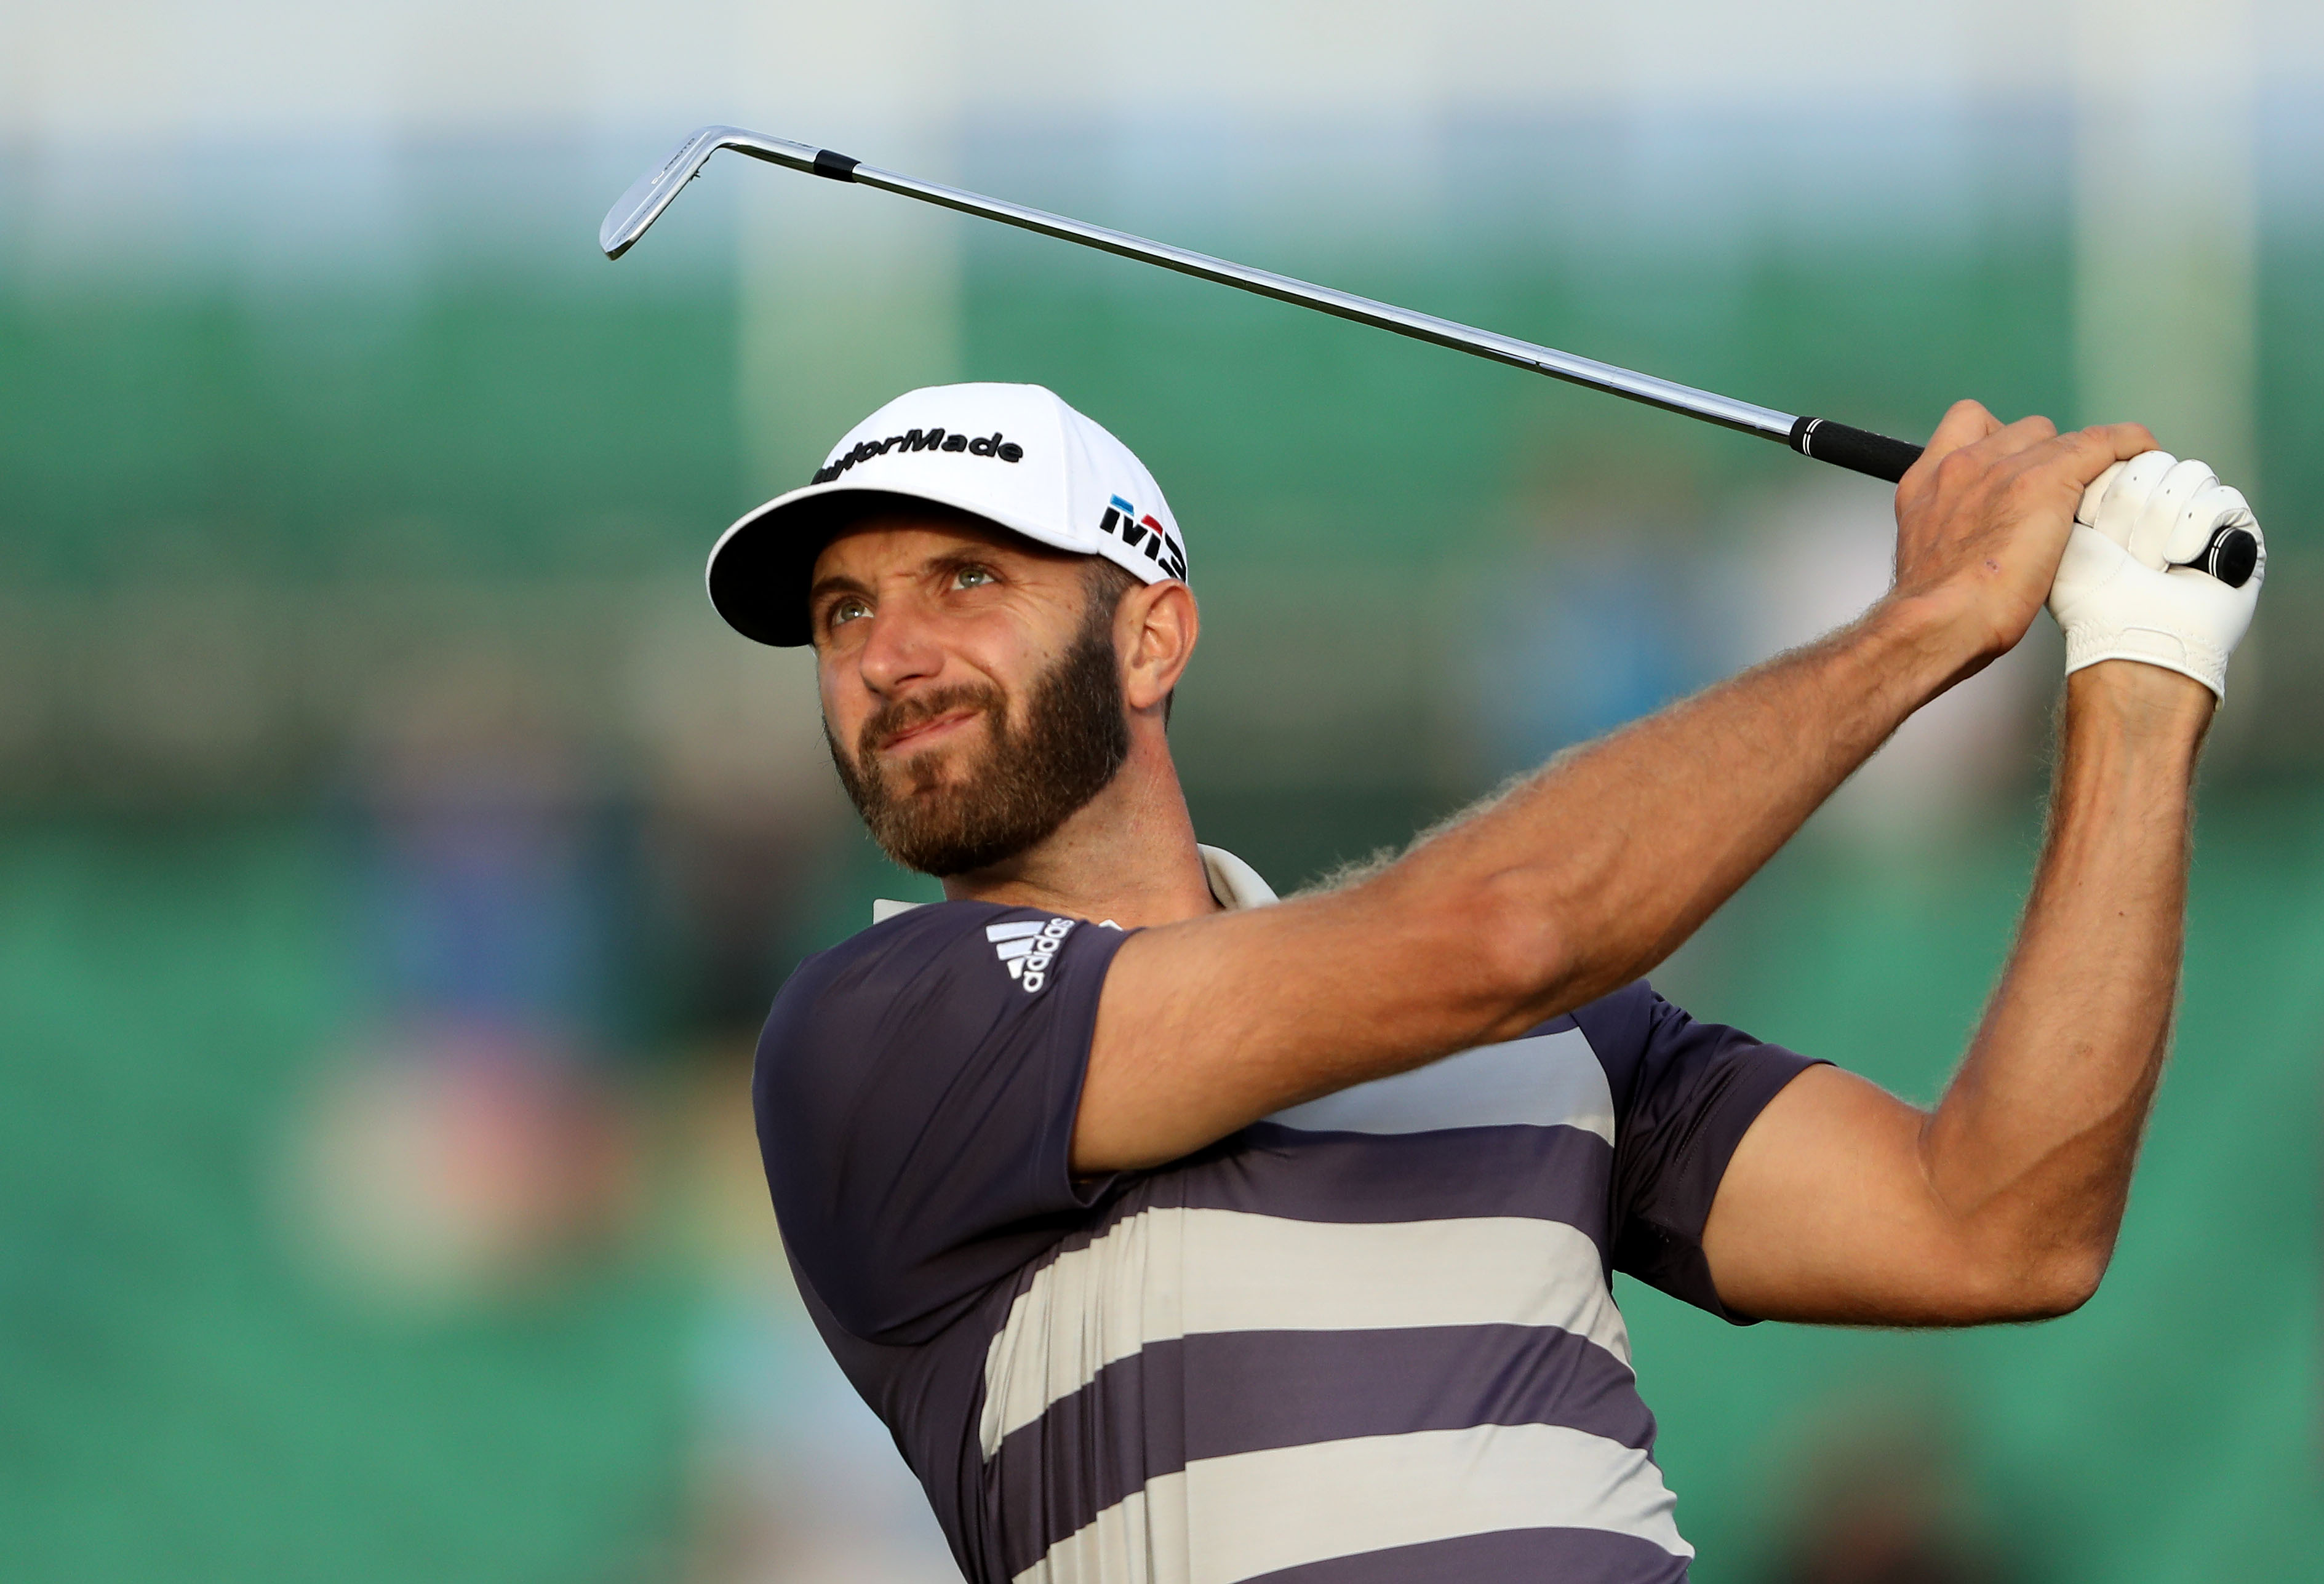 SOUTHAMPTON, NY - JUNE 16: Dustin Johnson of the United States plays his tee shot on the 17th hole during the third round of the 2018 US Open at Shinnecock Hills Golf Club on June 16, 2018 in Southampton, New York. (Photo by David Cannon/Getty Images)